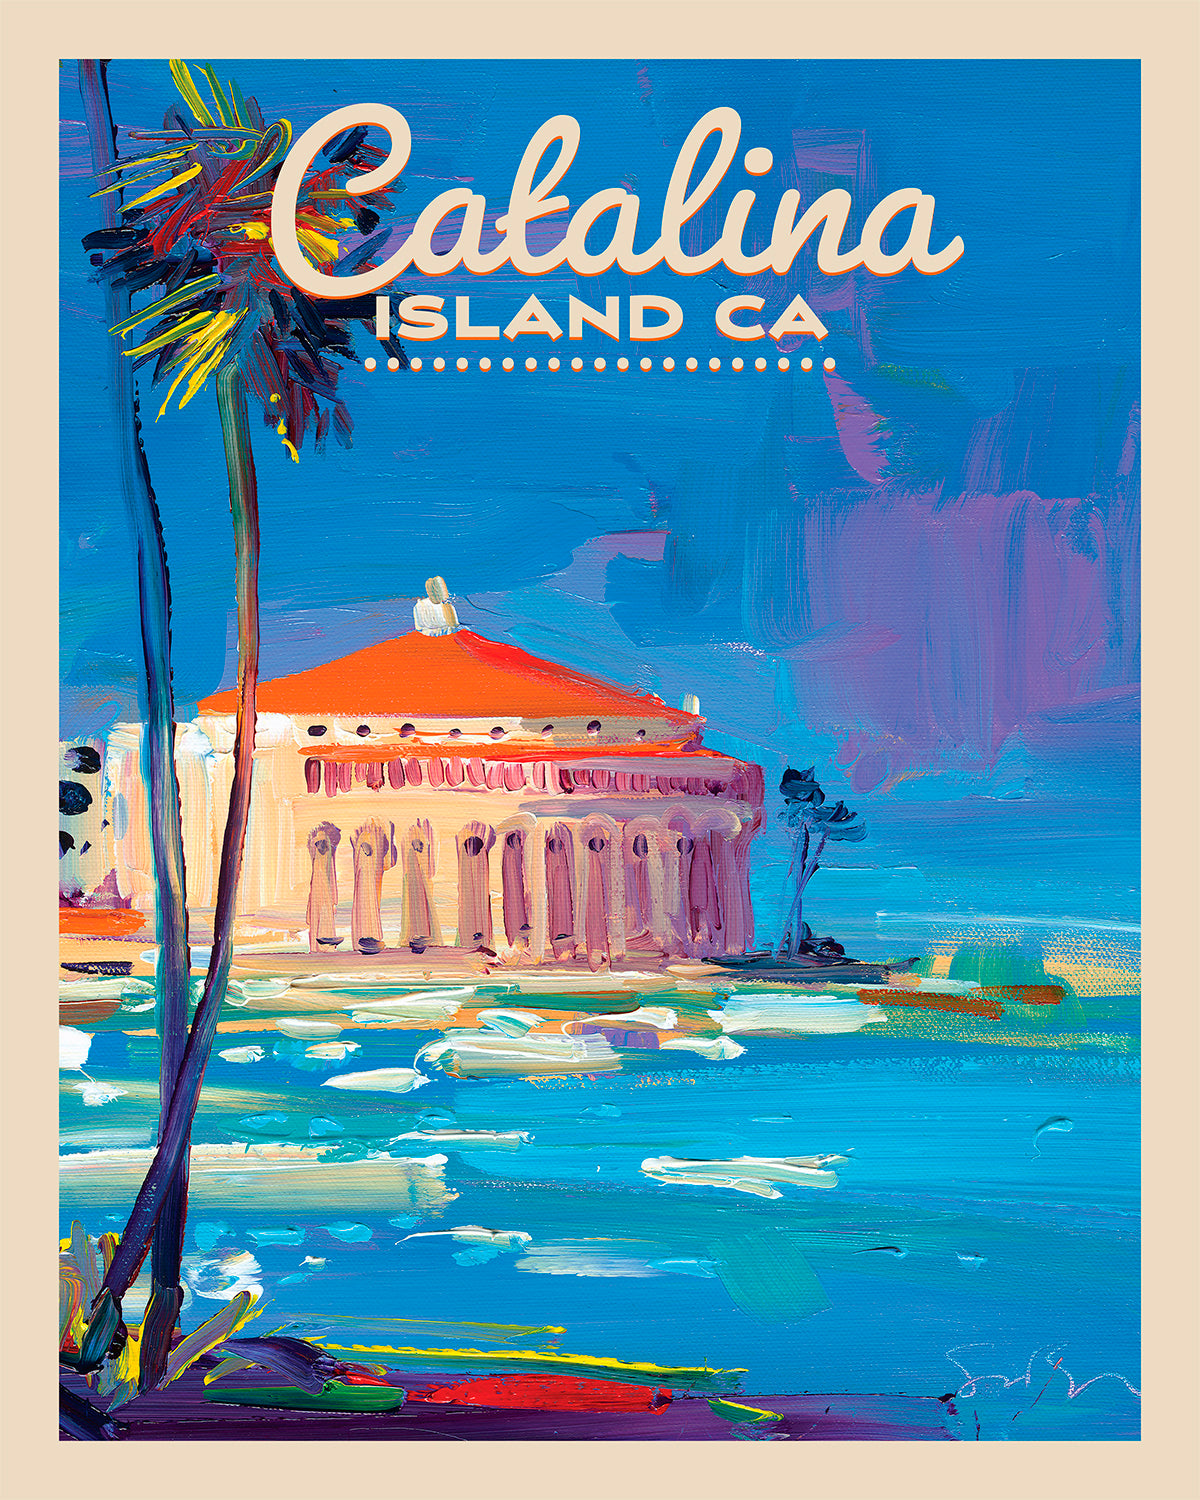 Catalina Island - Travel Poster